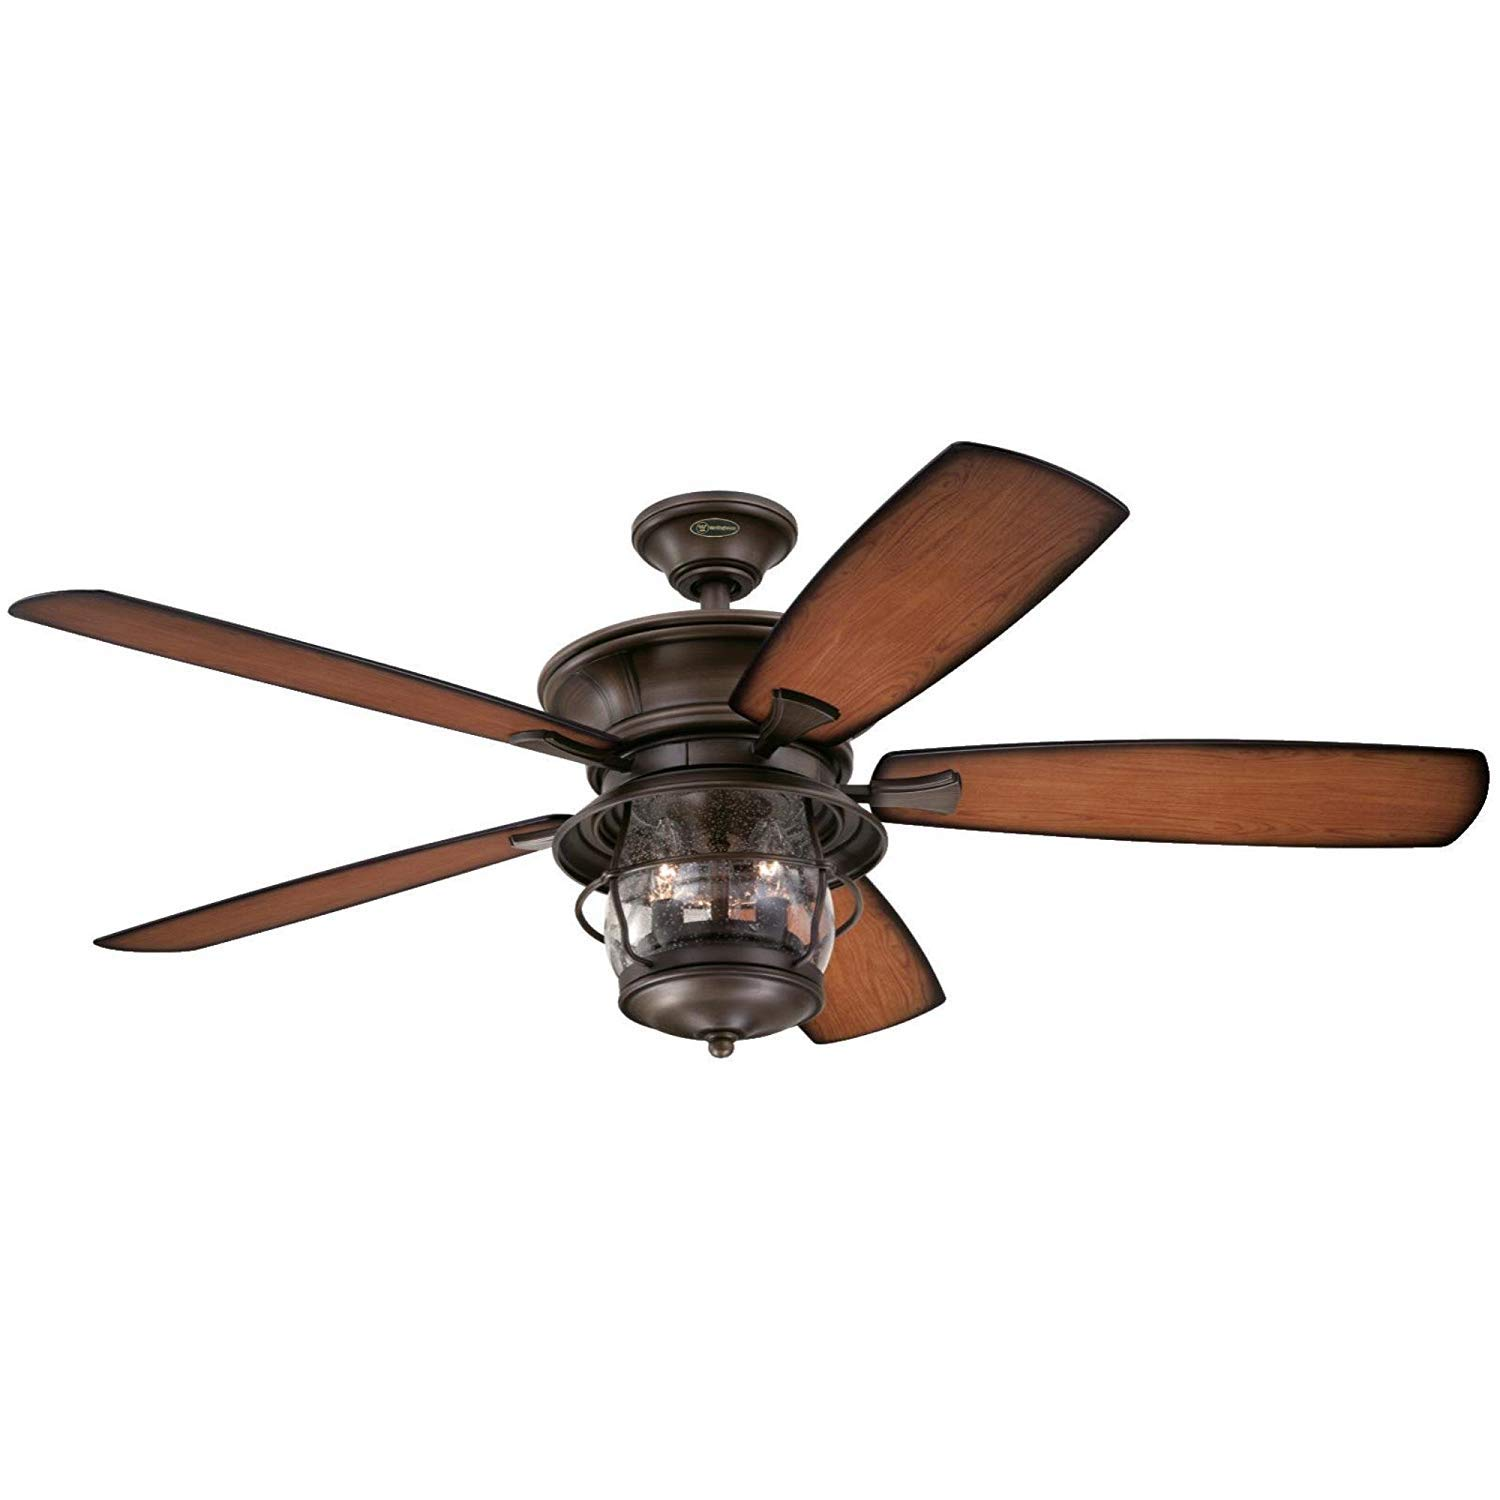 Westinghouse Lighting 7204300 Indoor Outdoor Ceiling Fan Oil Rubbed Bronze Finish 52